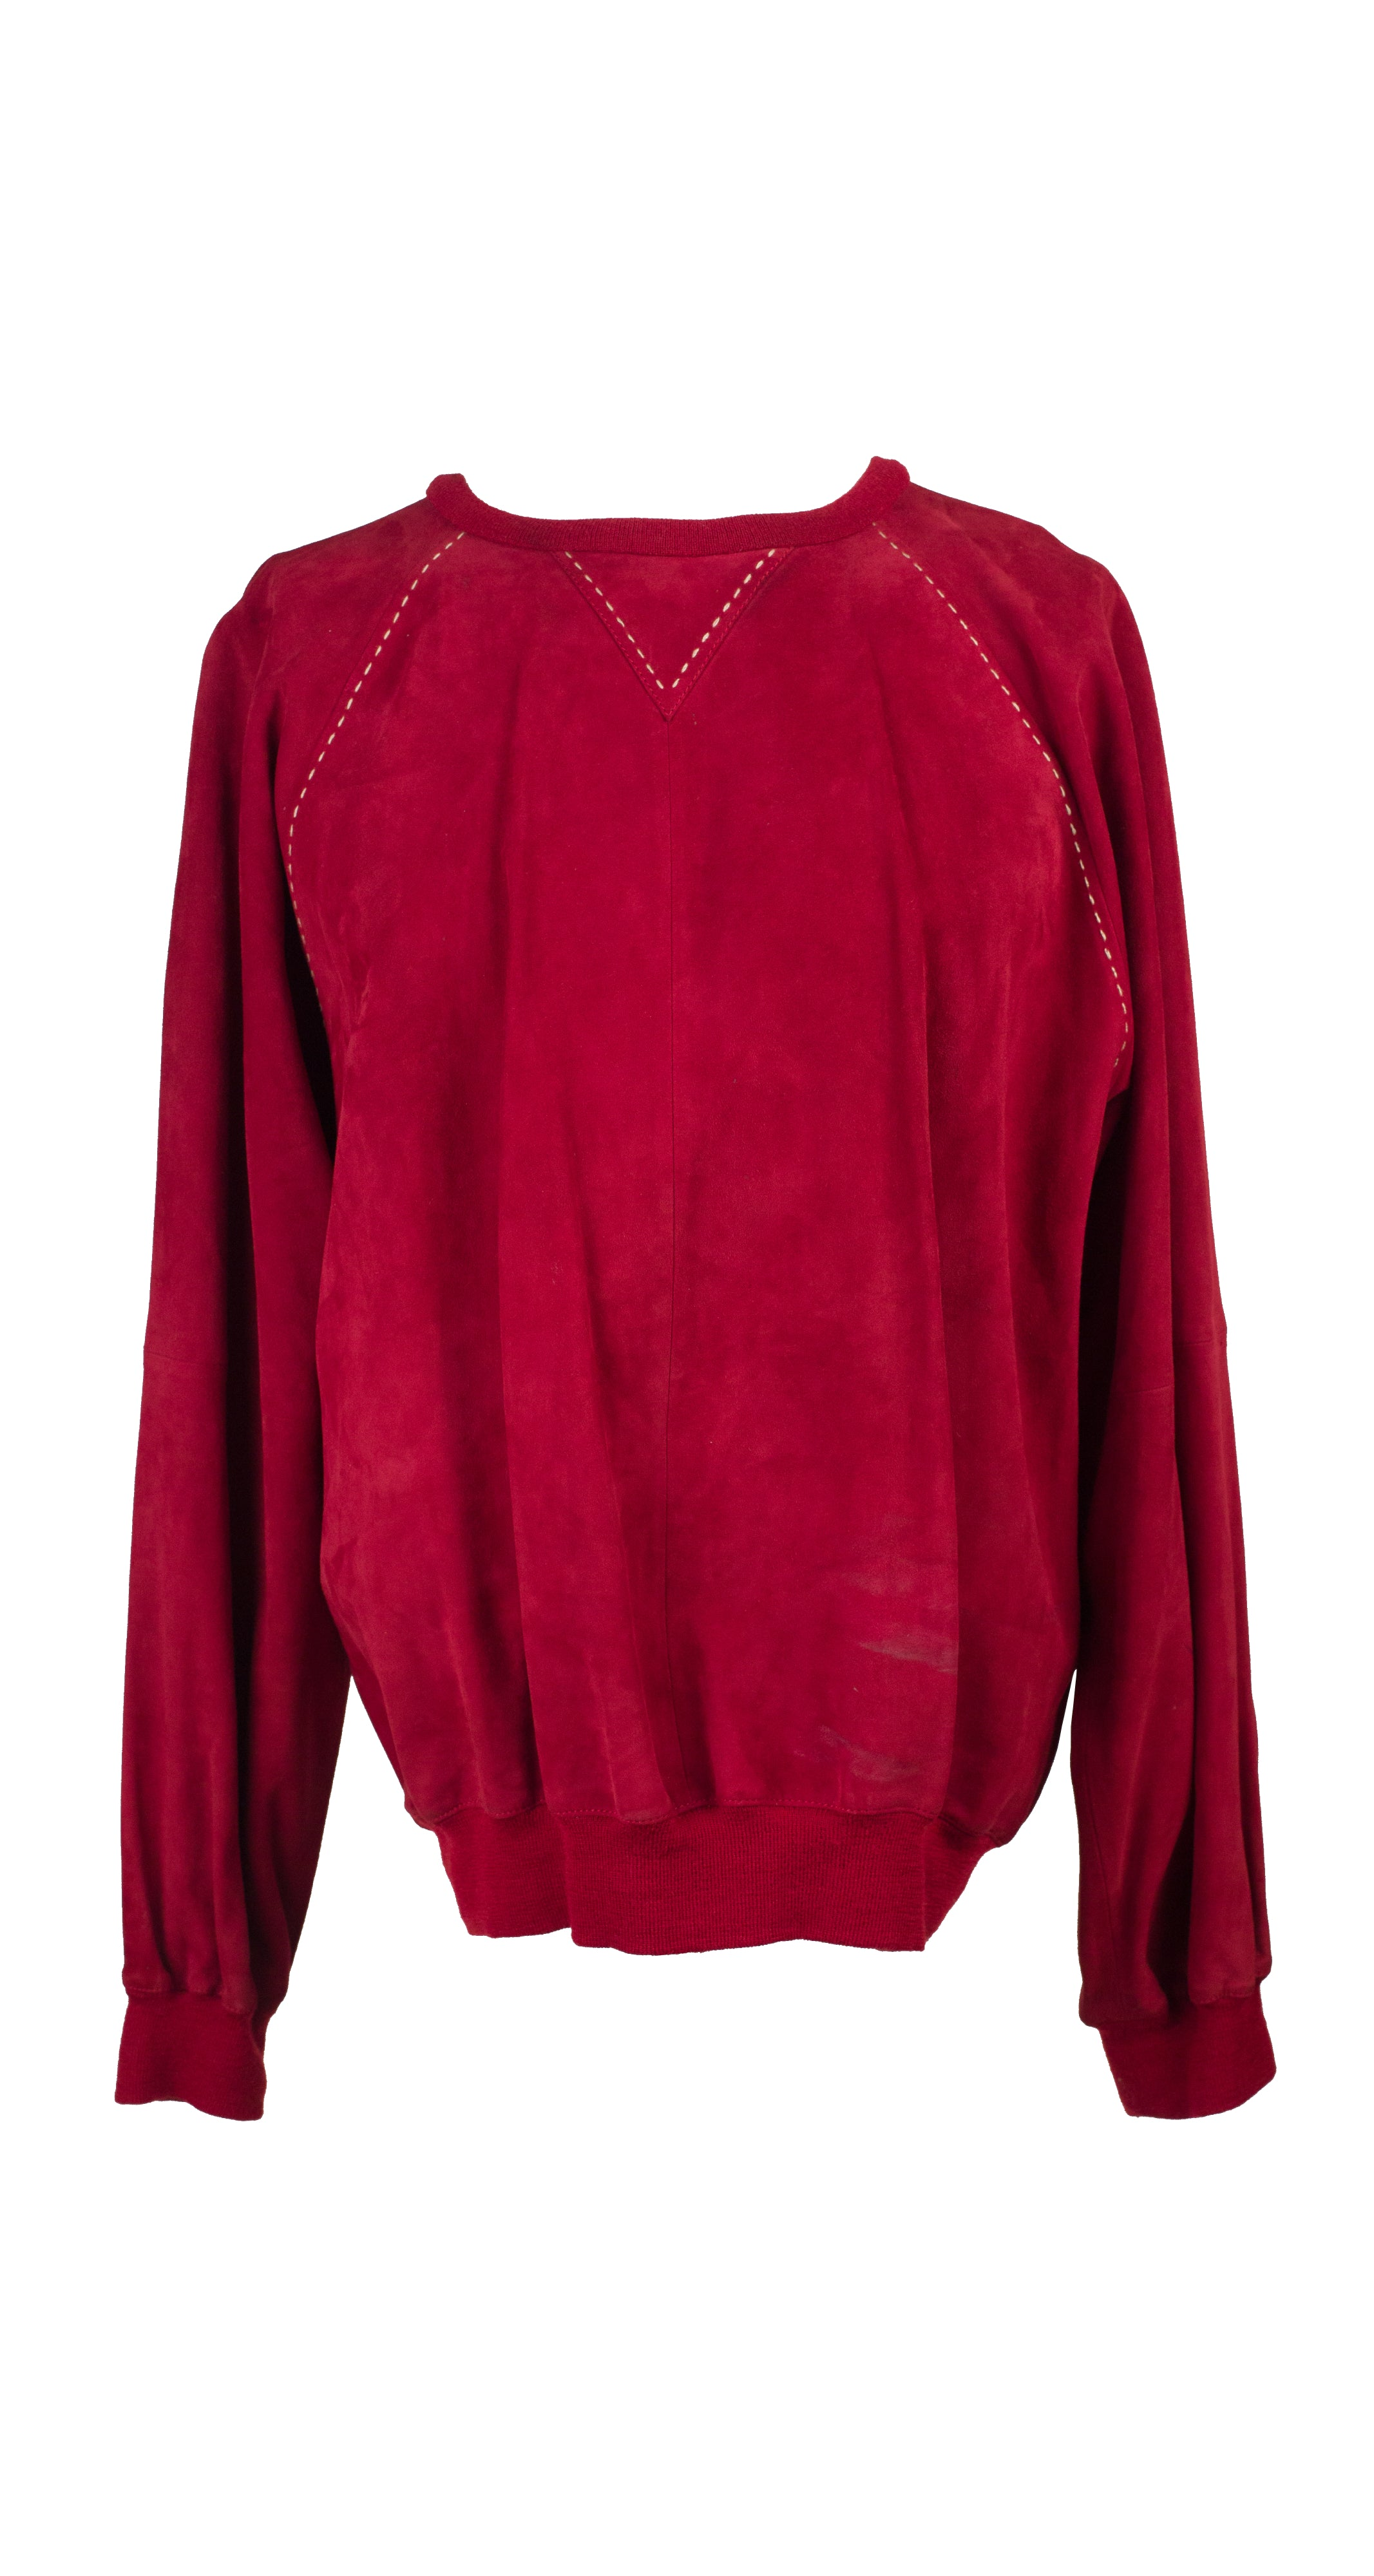 1980s Men's Red Suede Pullover Sweater